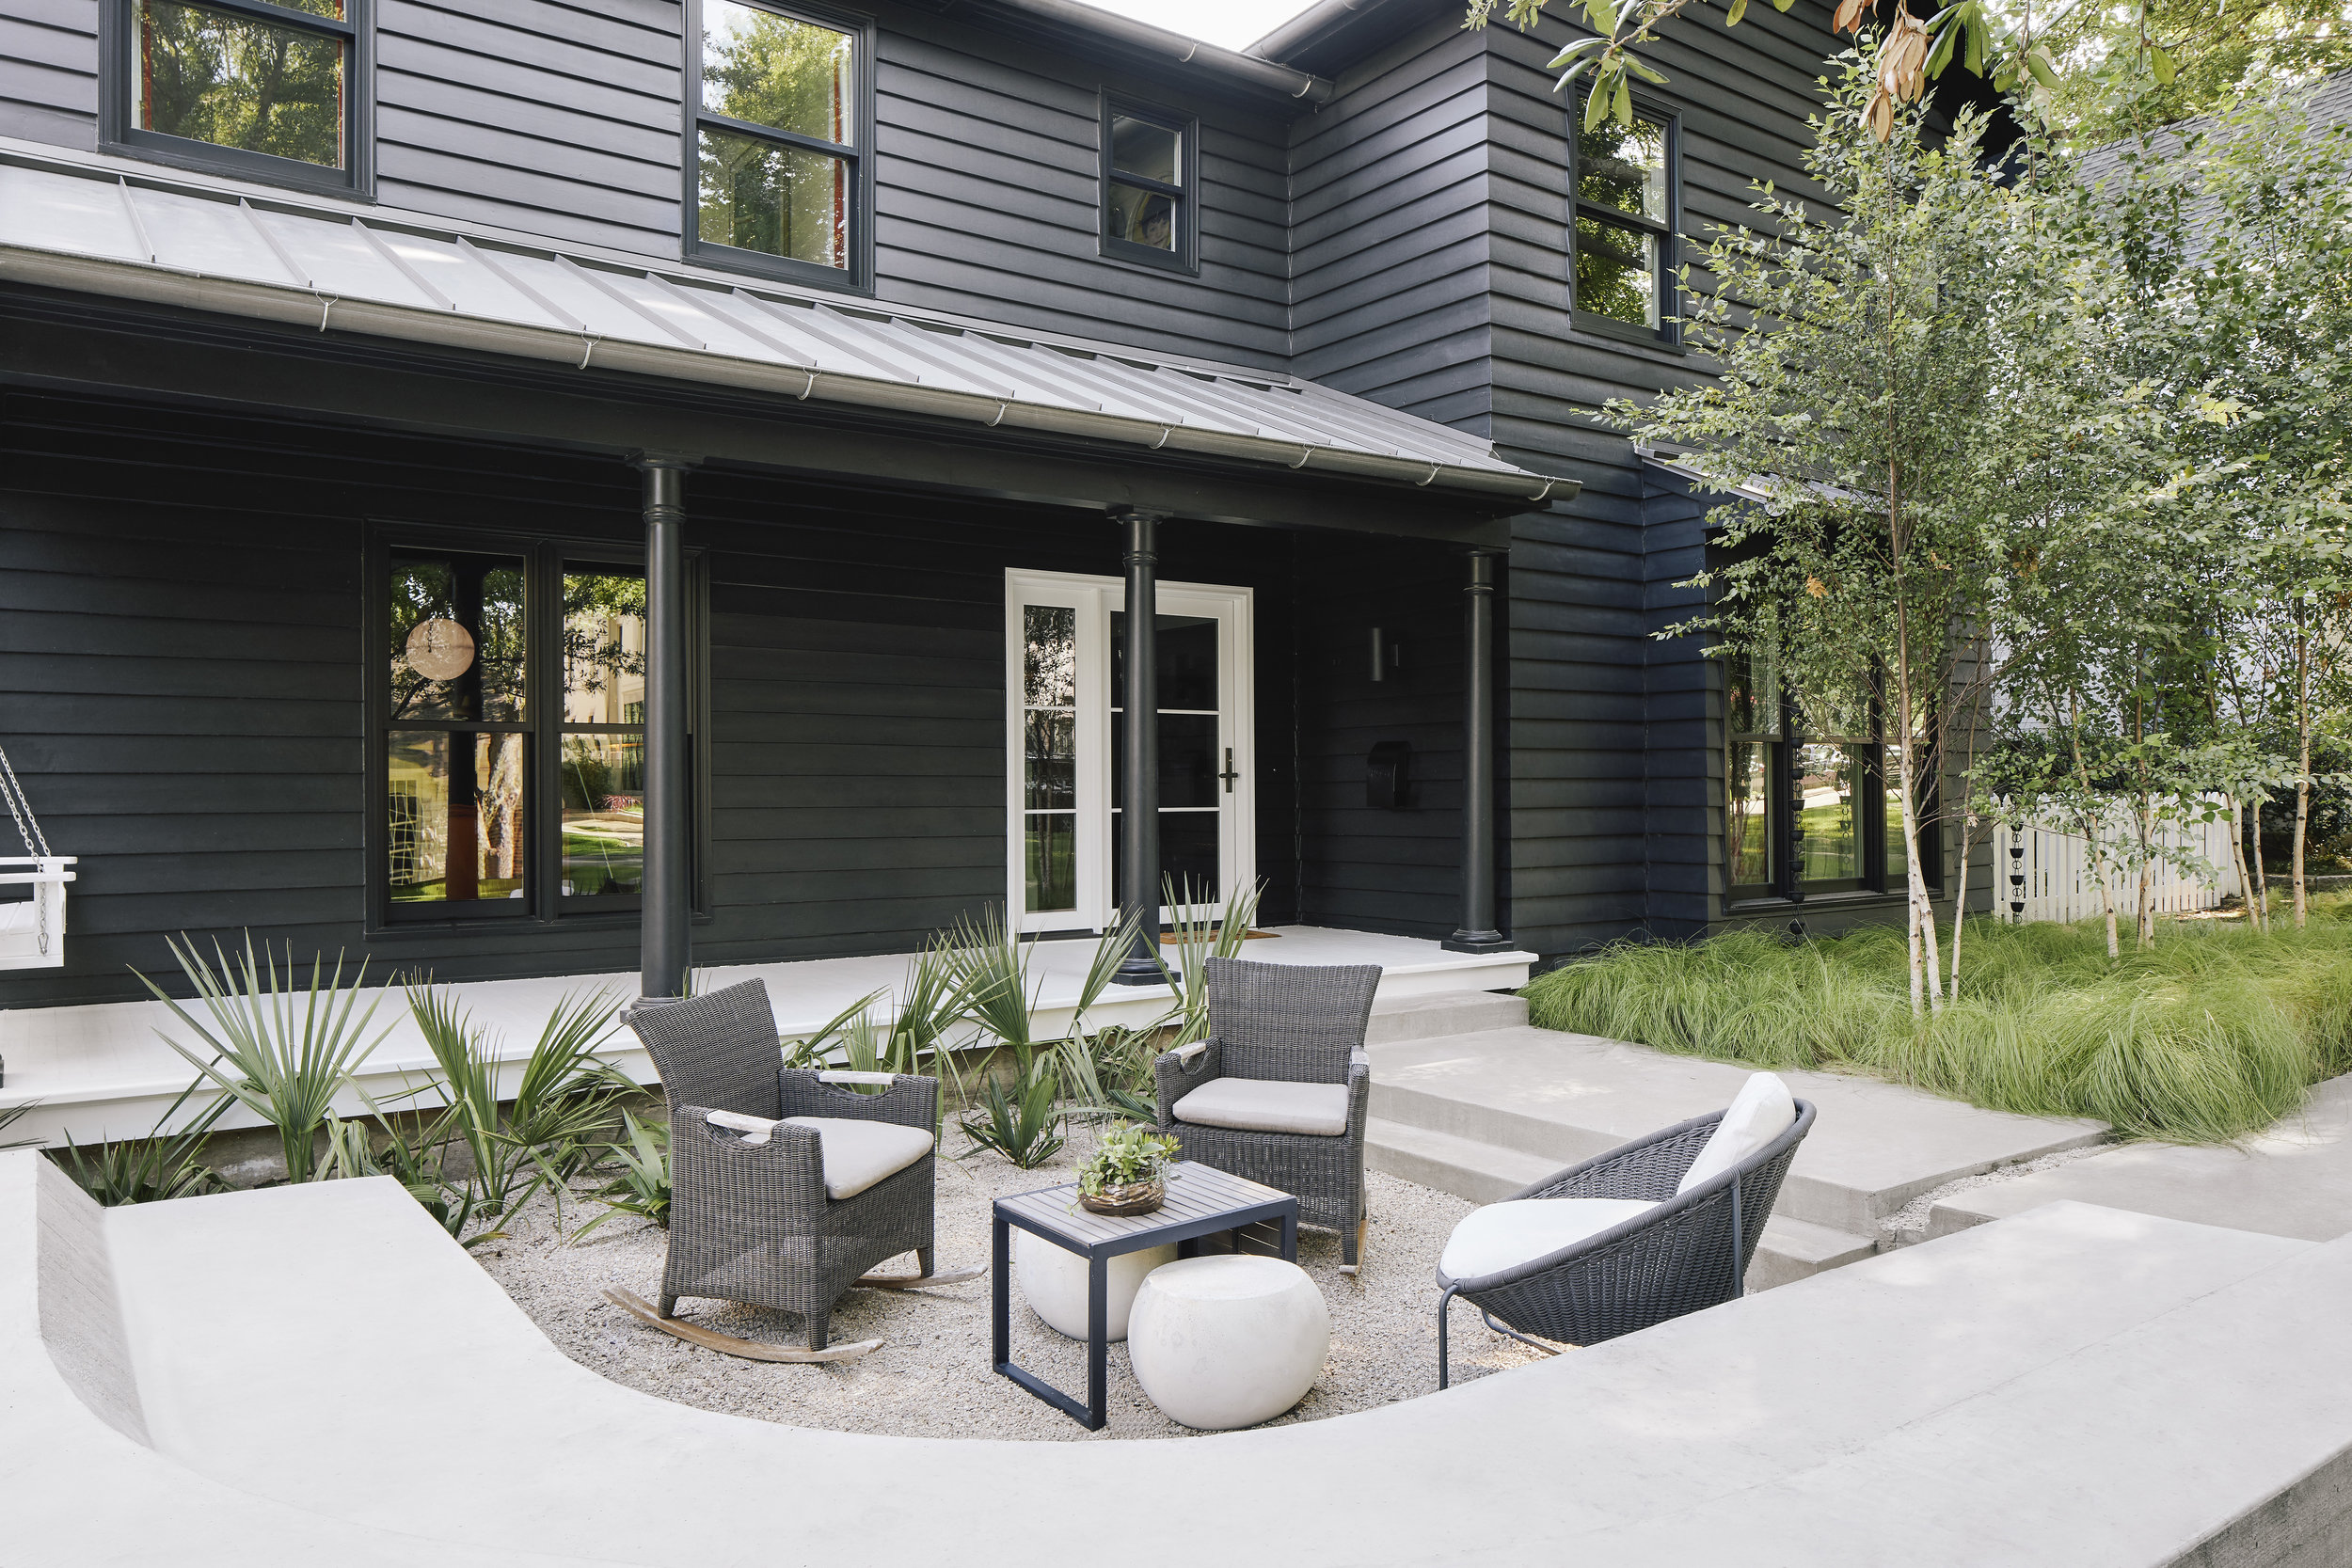 DHOME_3212GREENBRIER_OUTDOORSEATING.jpg